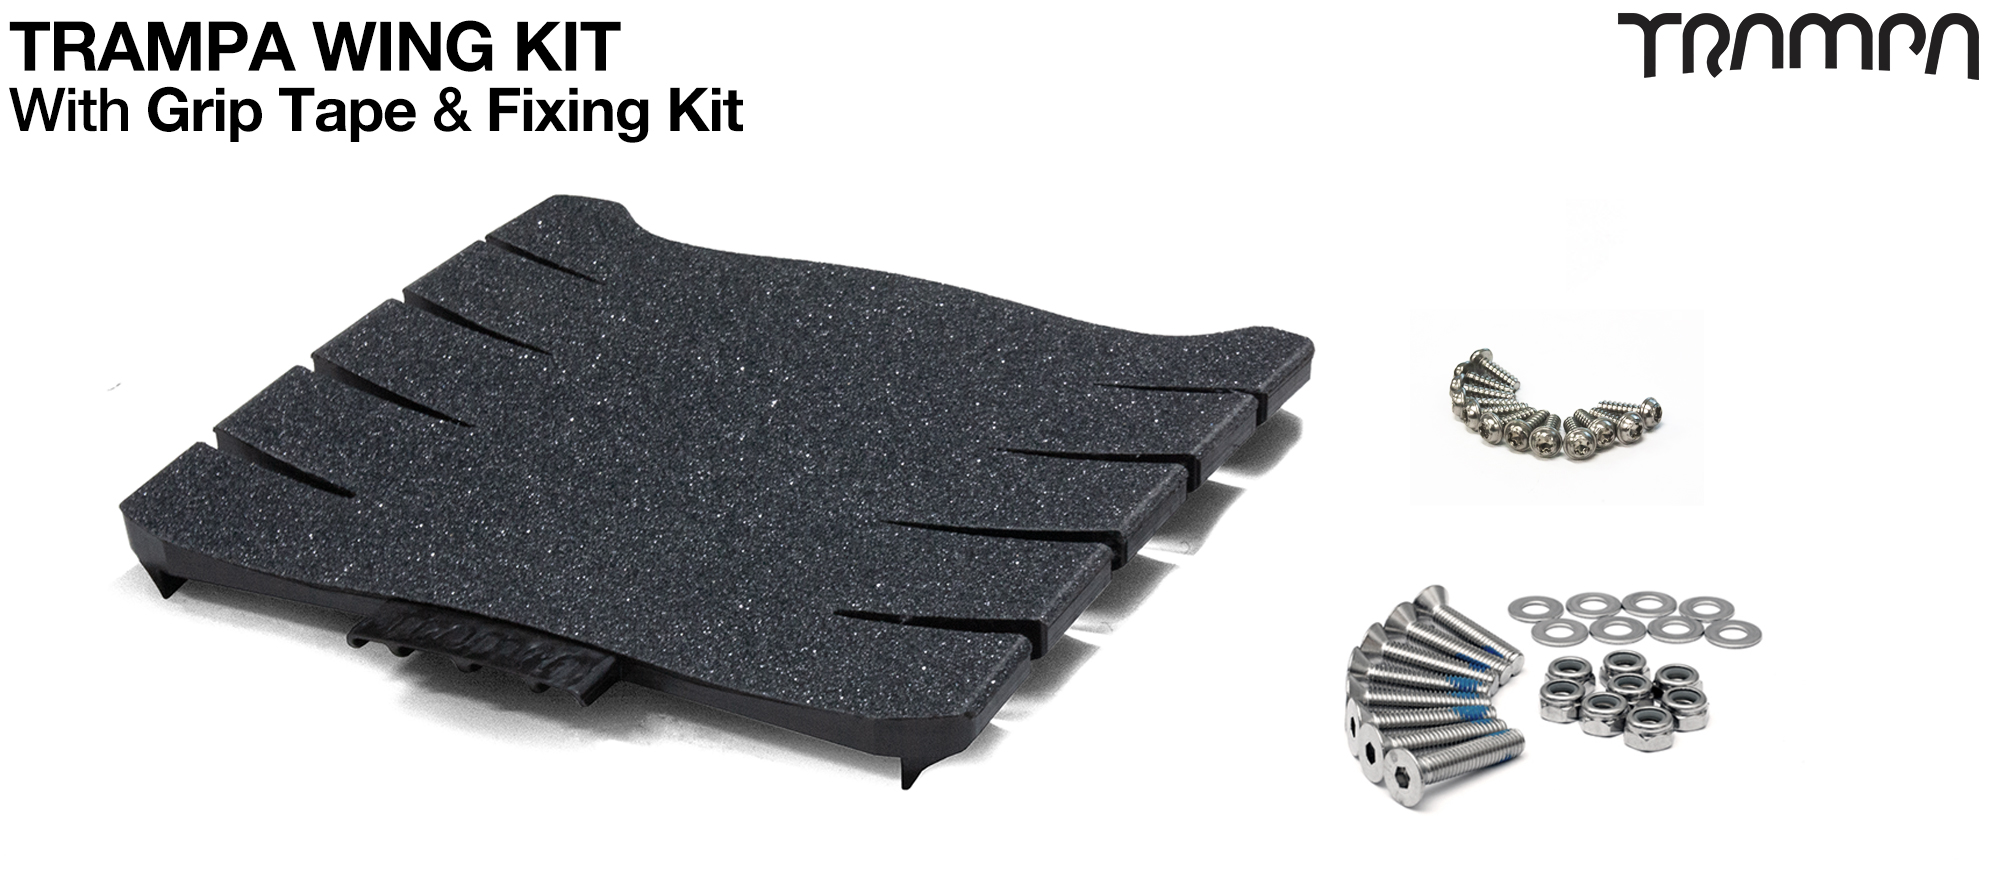 TRAMPA WING KIT Complete with Grip Tape & Bolt kit - Widens & Stiffens your deck whilst supplying a routing channel for cables for motors & lights